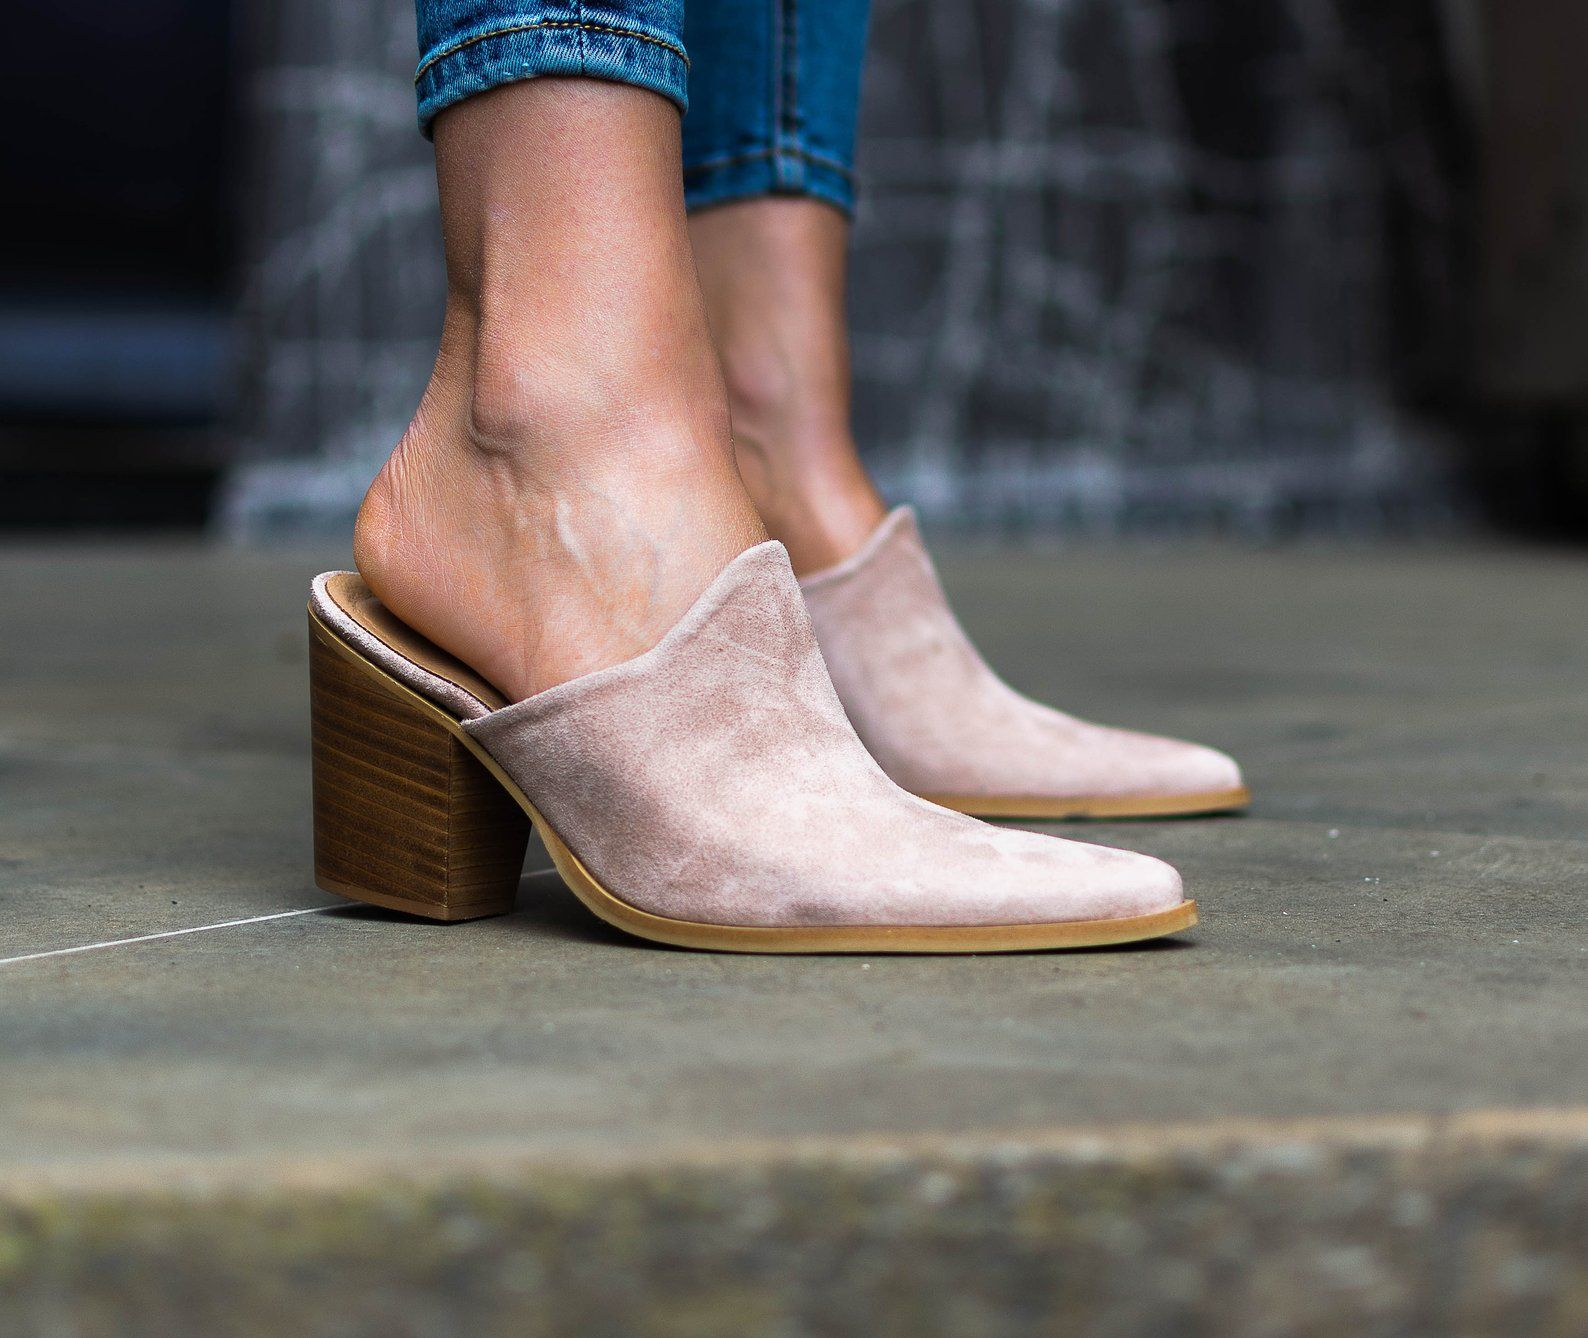 Suede mules, Leather sandals women